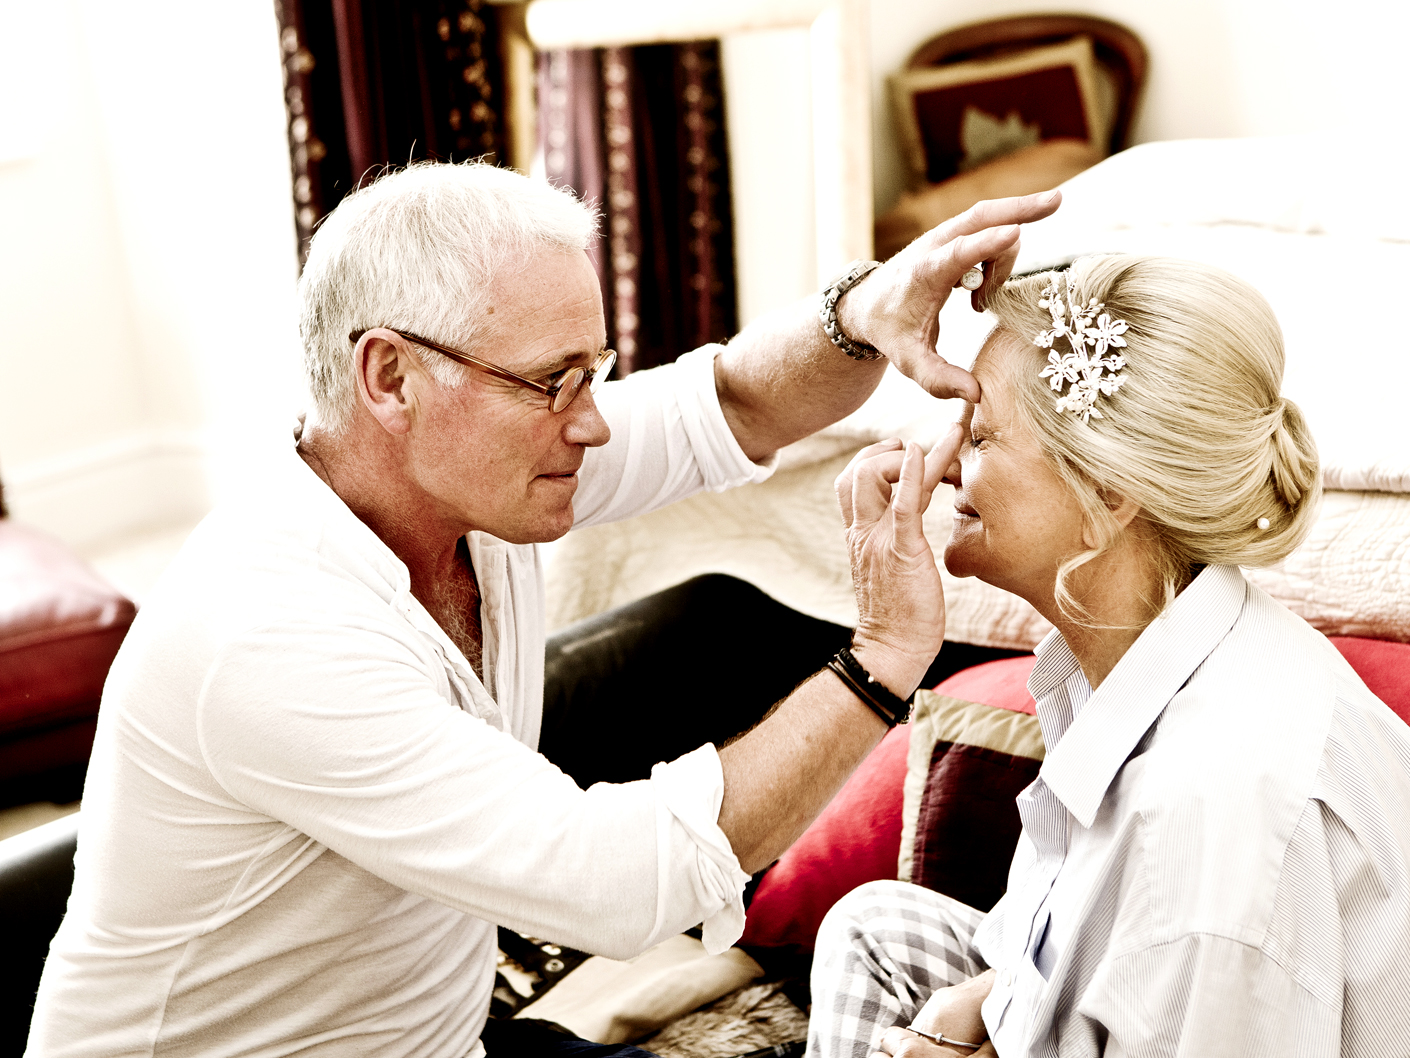 photography-of-the-brides-make-up-before-the-wedding-ceremony-in-manchester